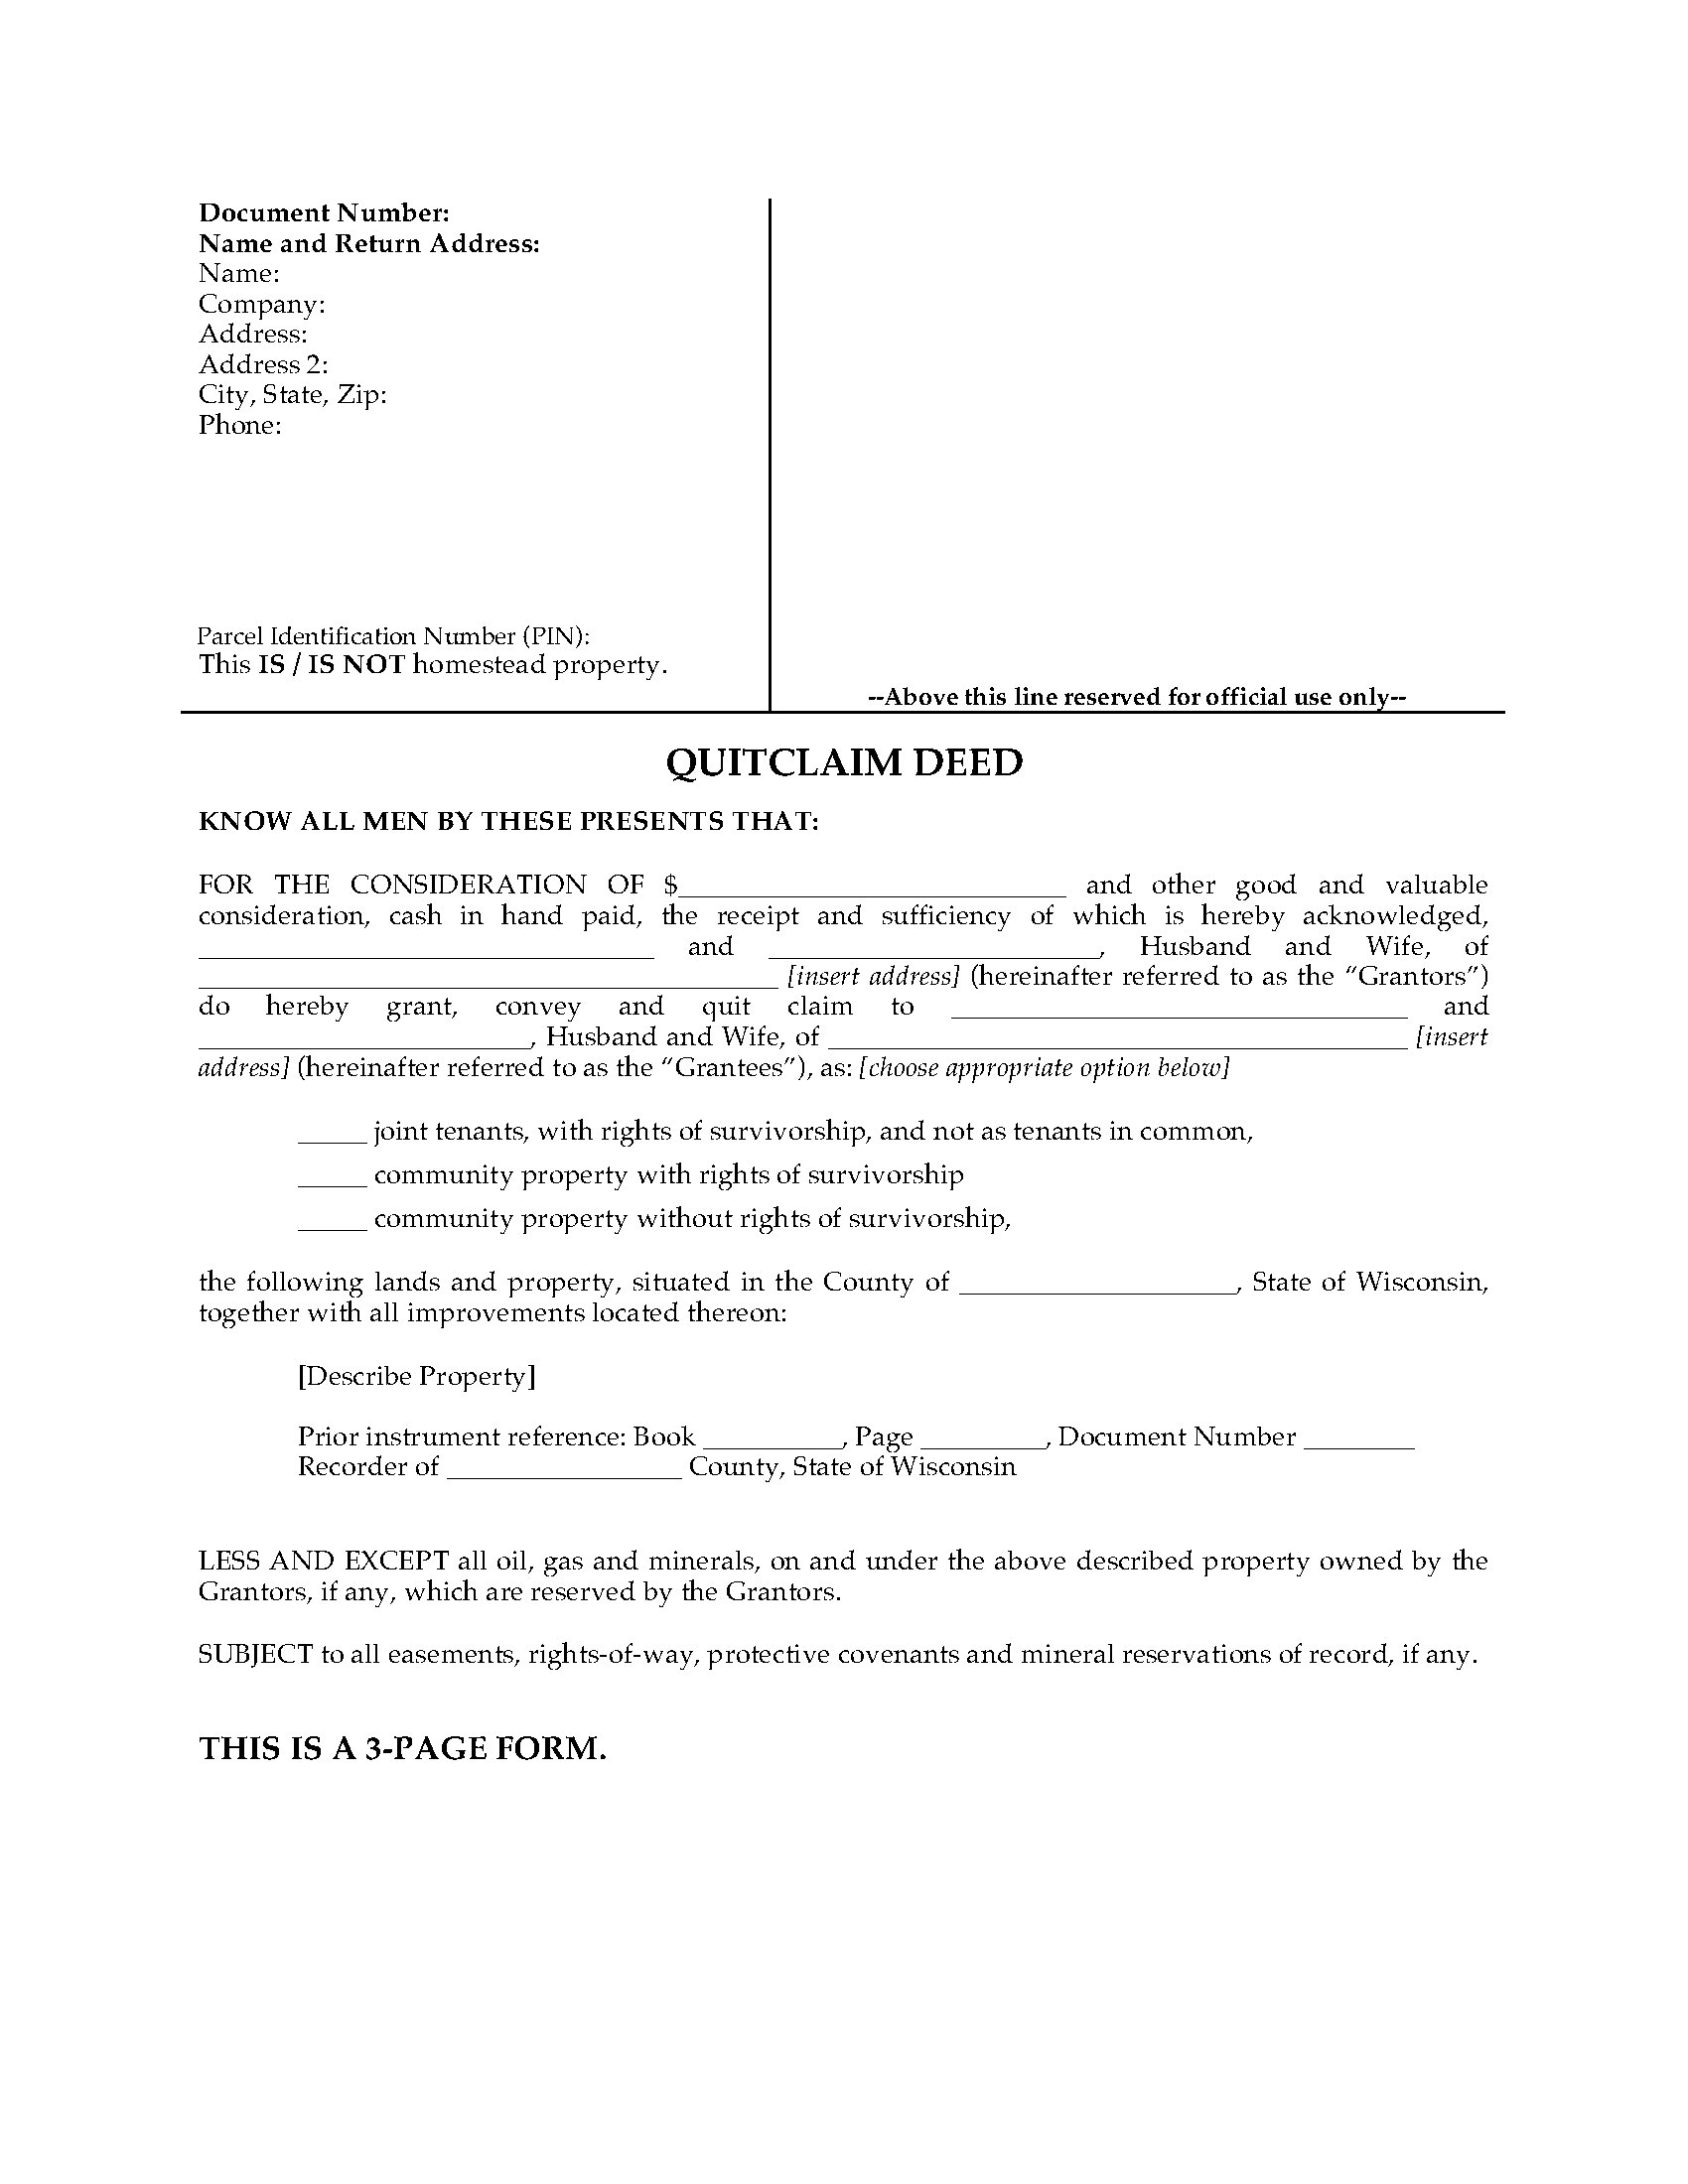 Wisconsin Quitclaim Deed for Joint Ownership | Legal Forms and ...